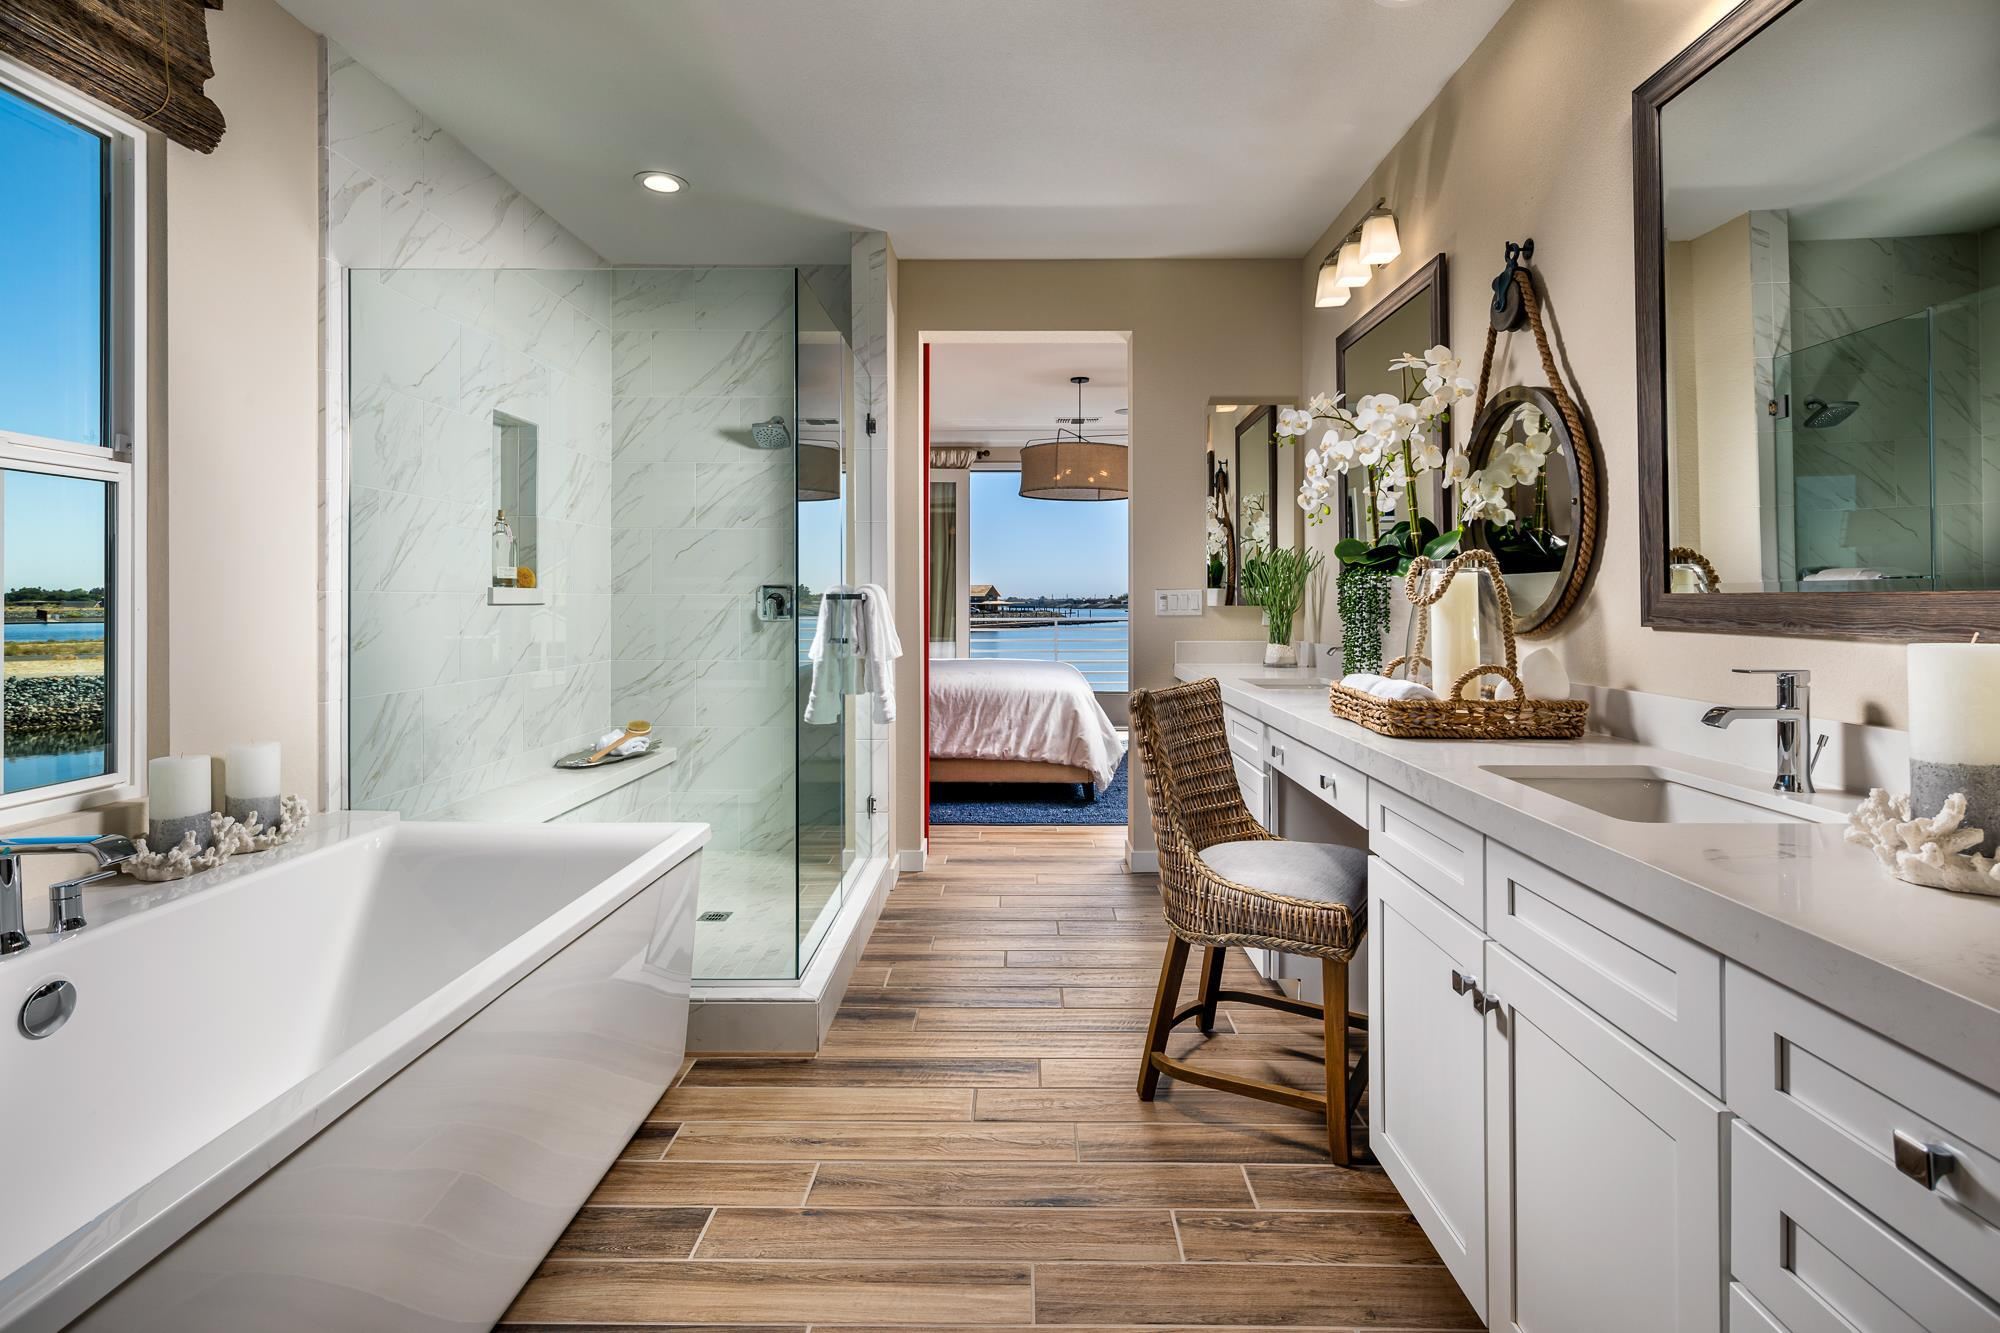 Bathroom featured in The Retreat By Davidson Communities in Oakland-Alameda, CA